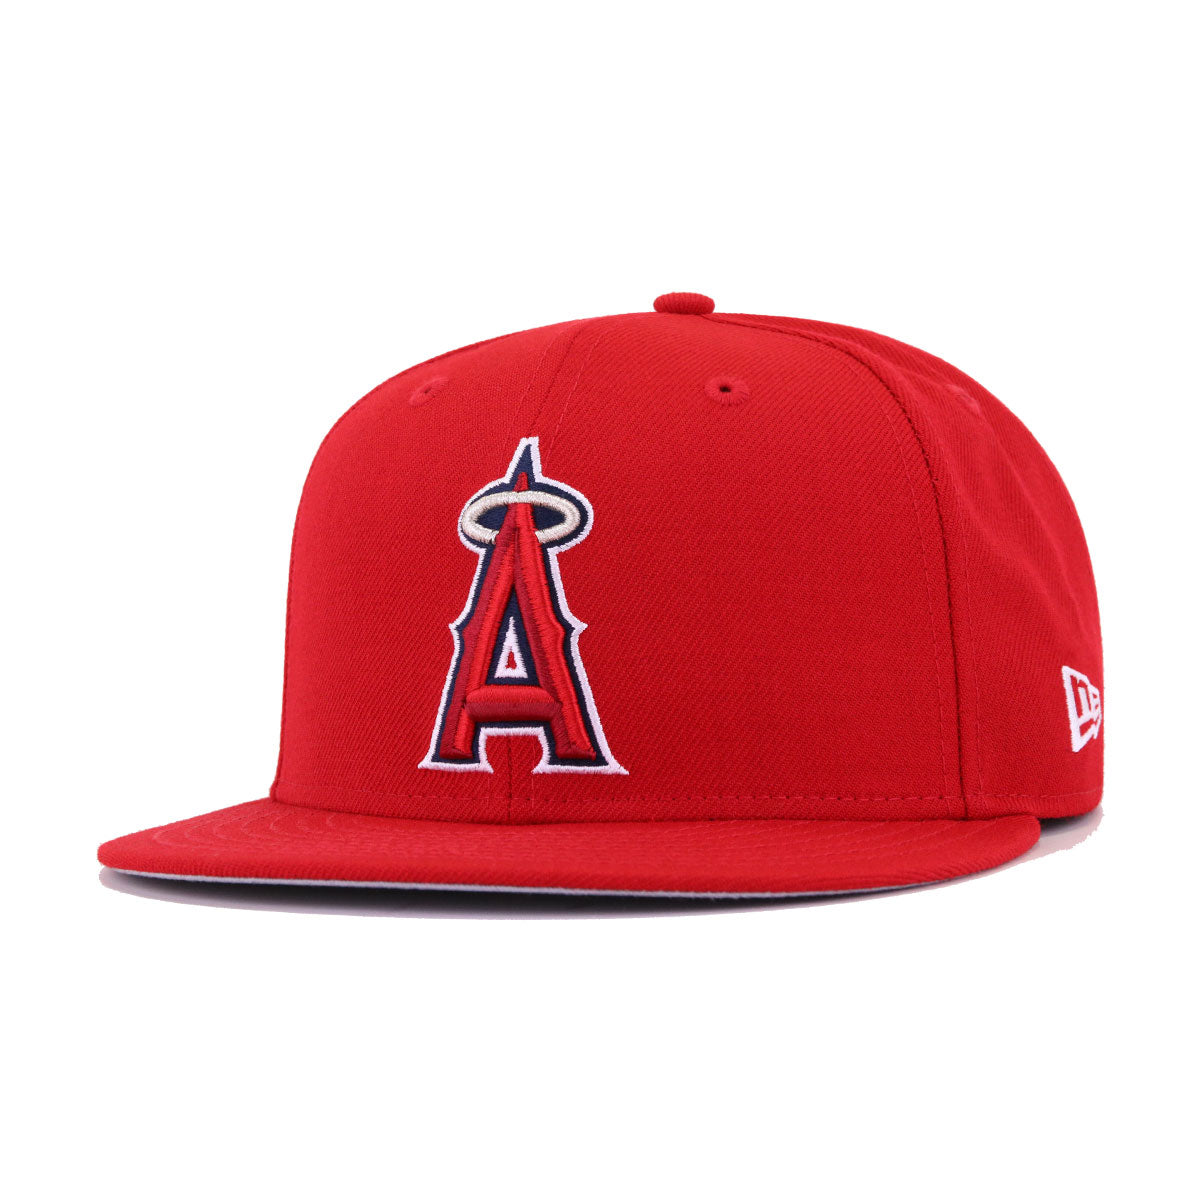 Los Angeles Angels Scarlet 50th Anniversary New Era 9Fifty Snapback